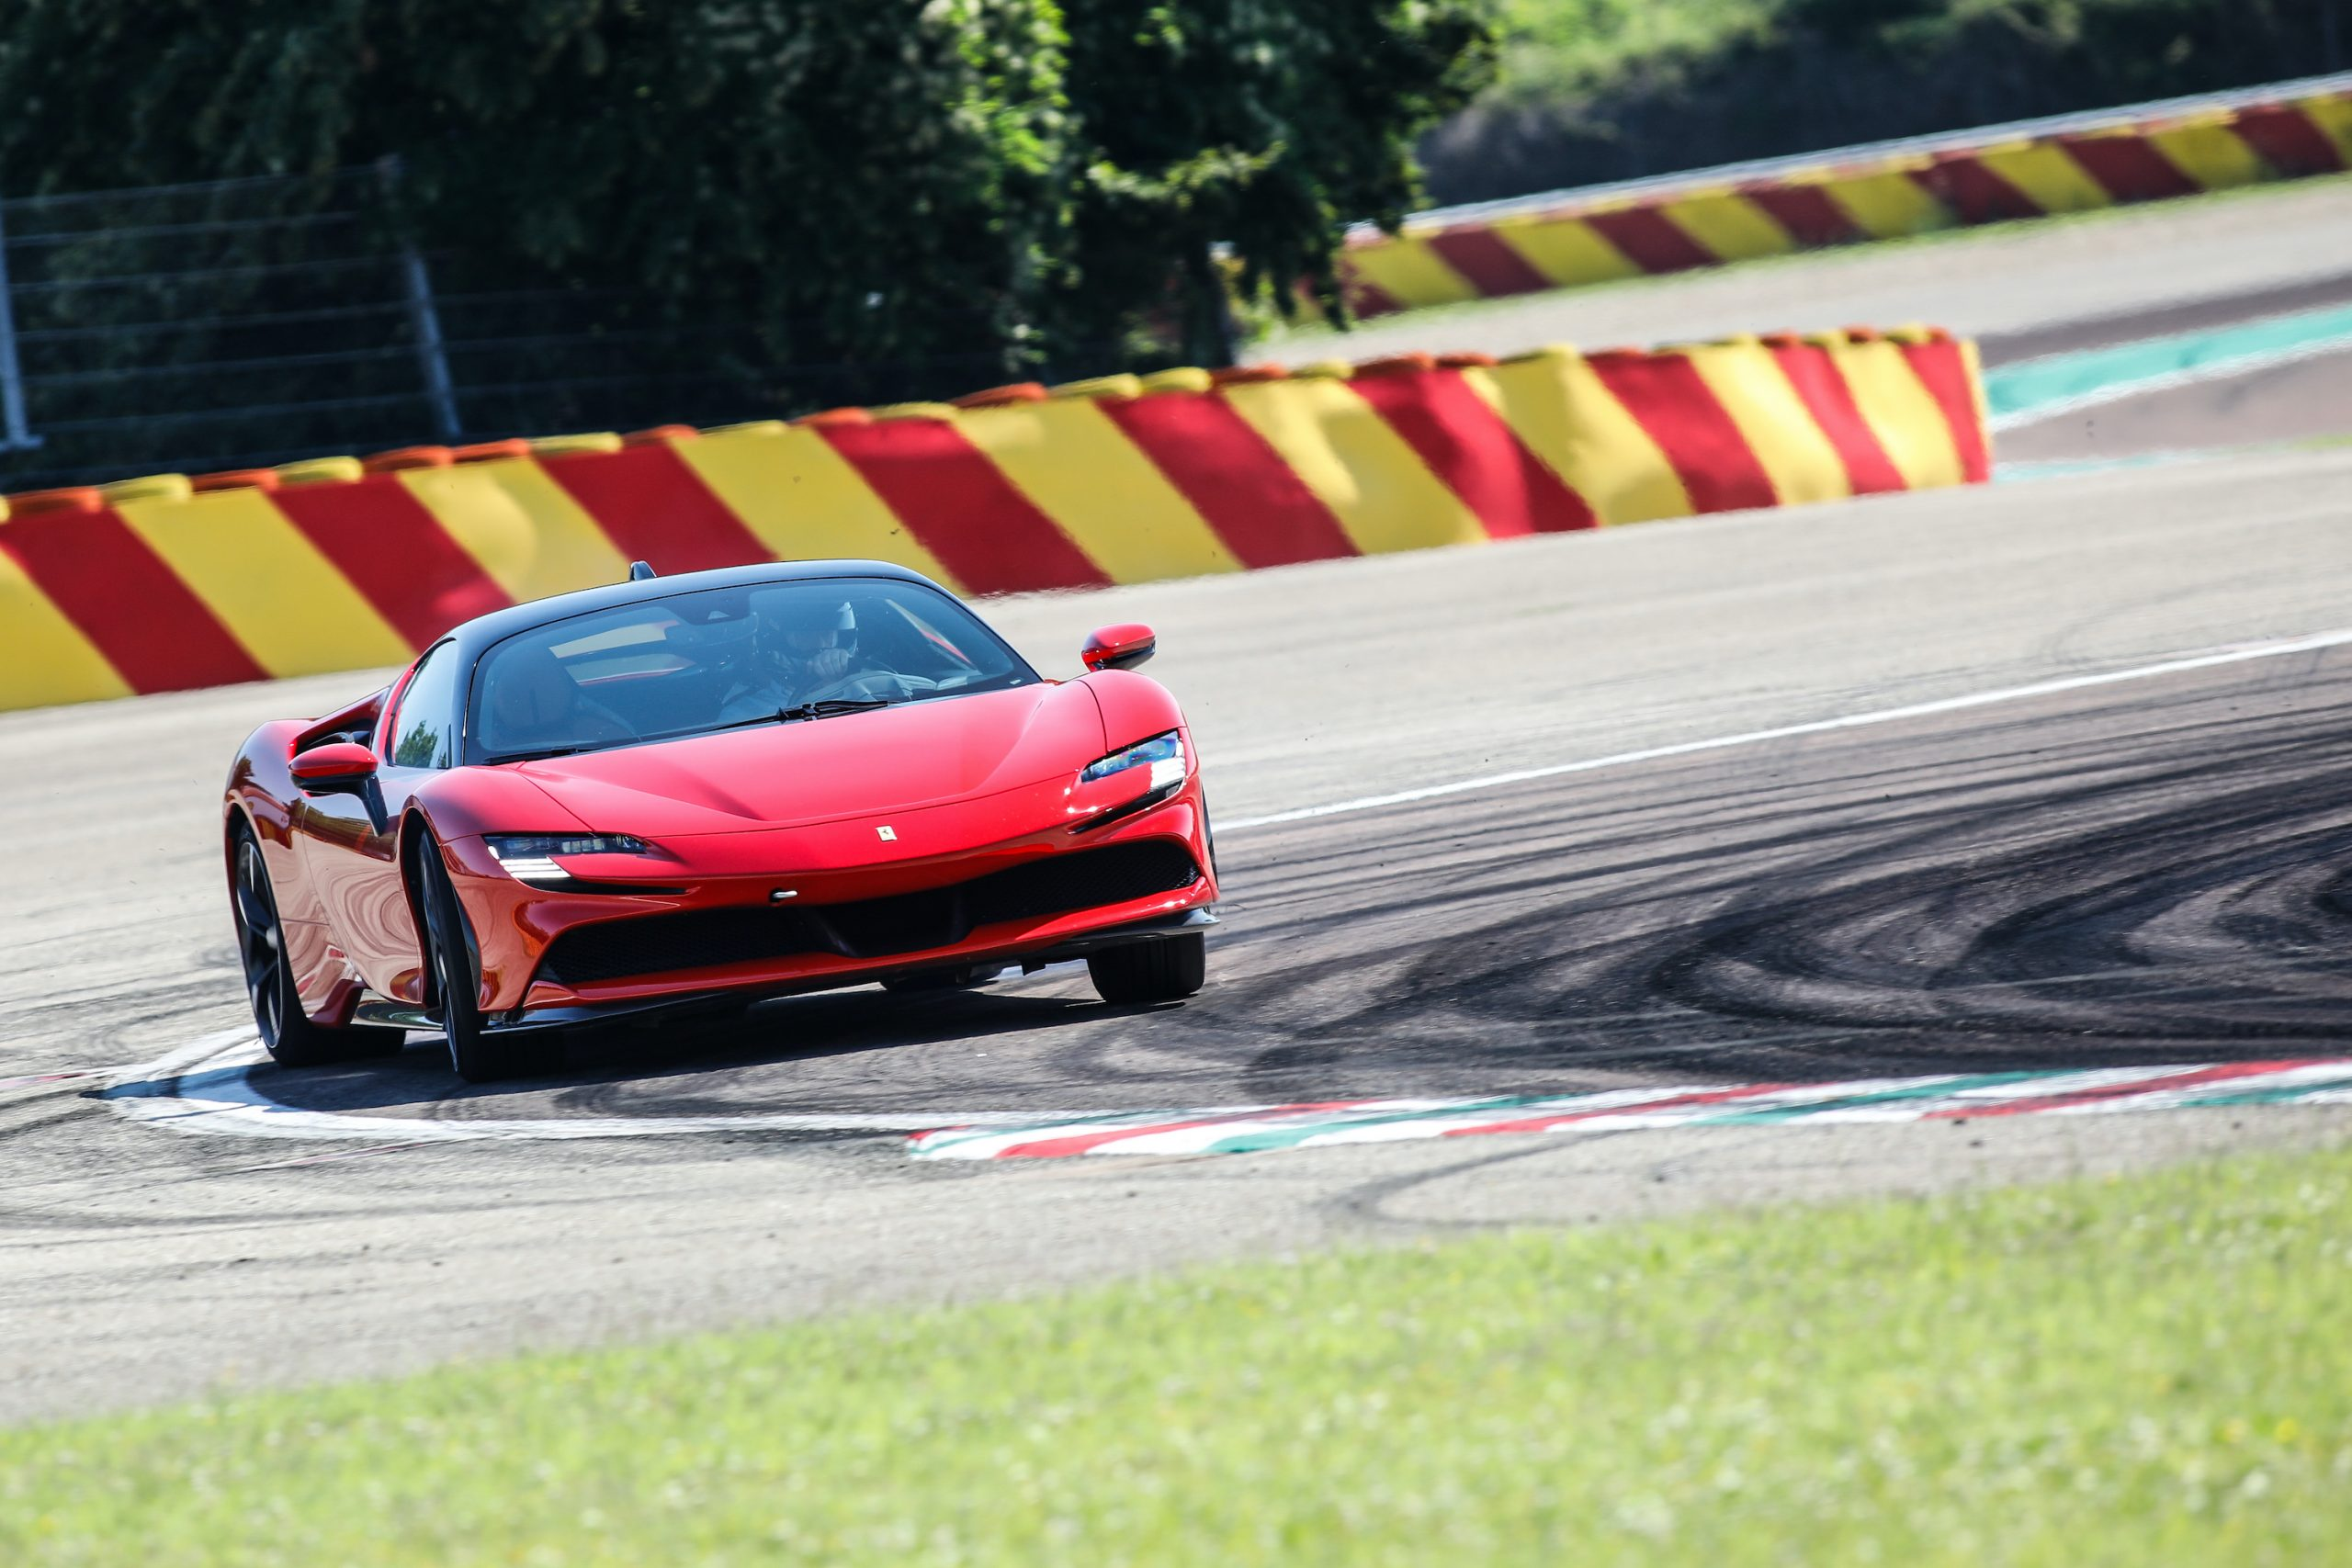 SF90 Stradale track action front